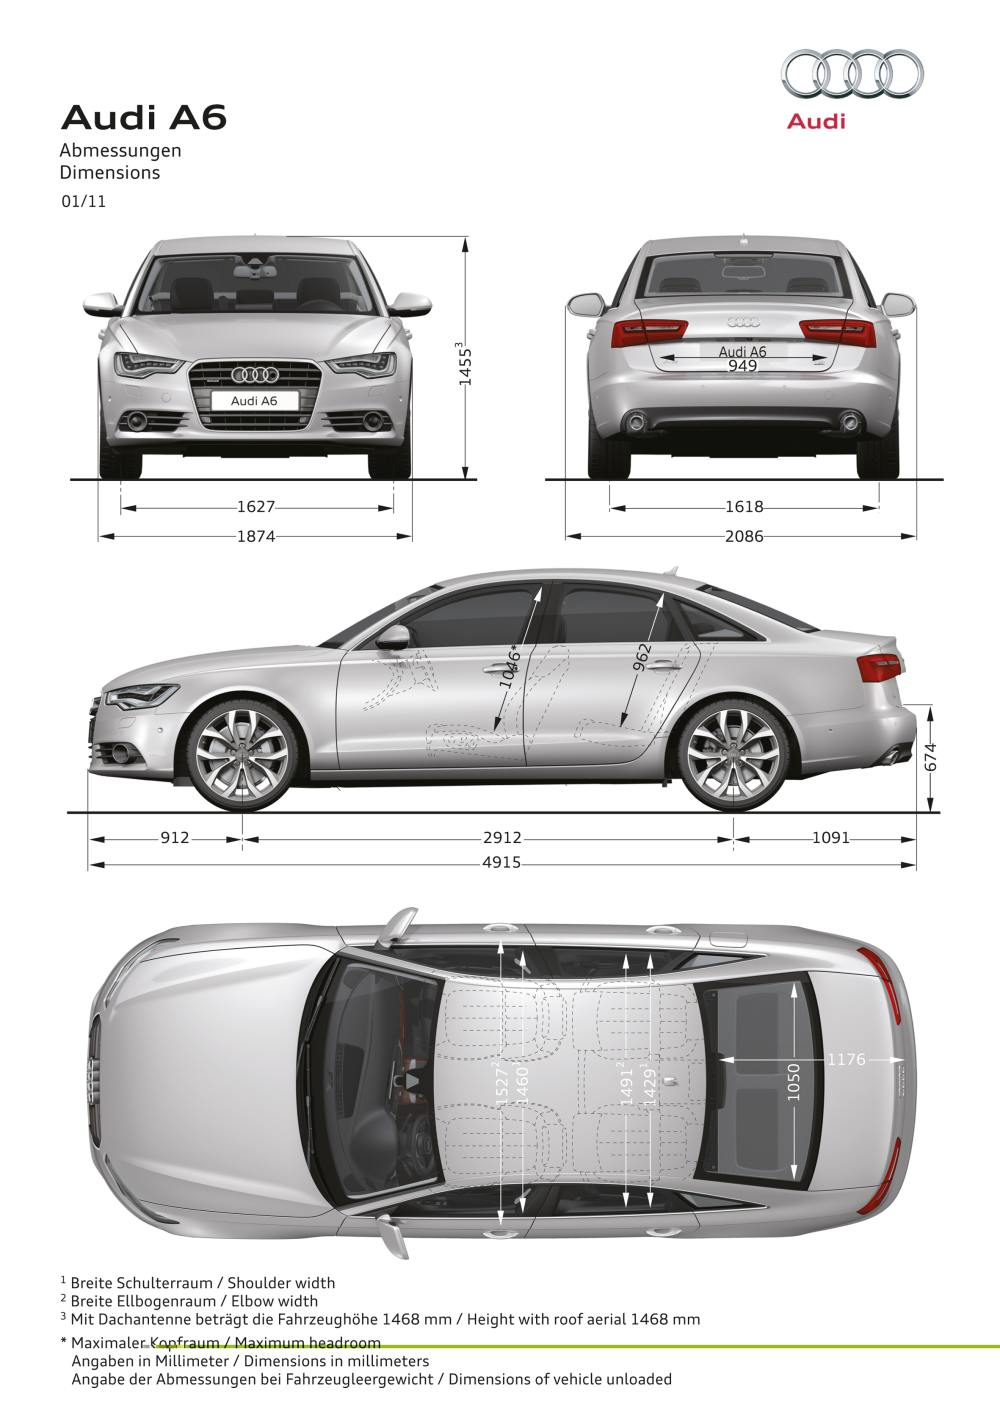 Audi-A6-Dimension-Sheet_Color